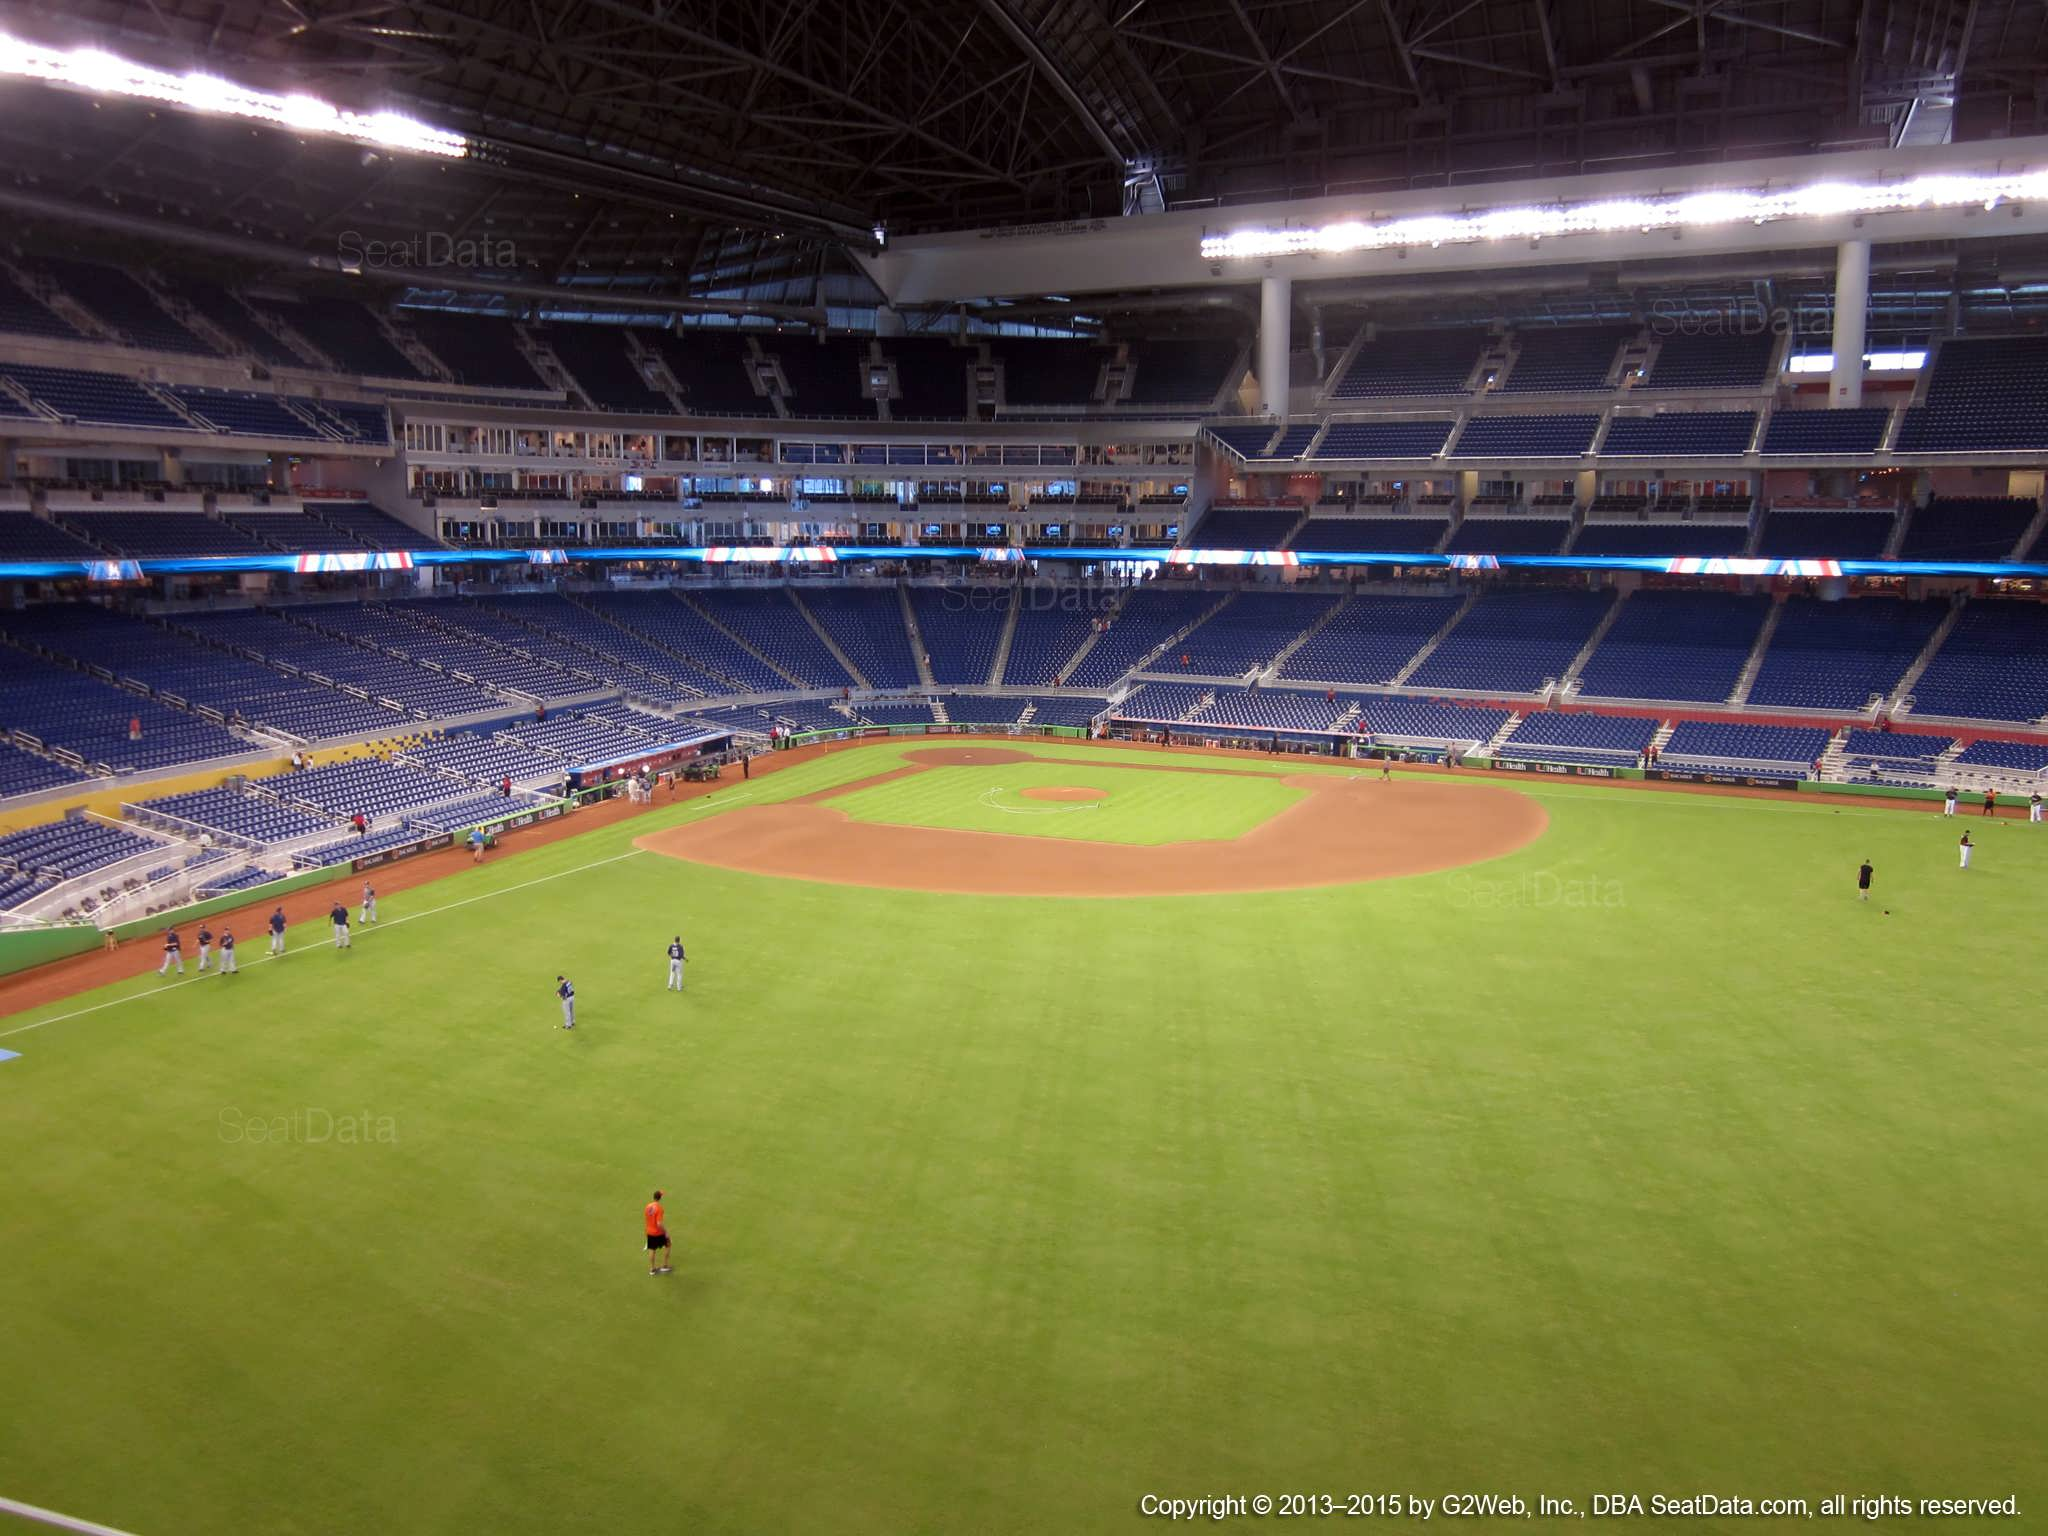 Seat view from section 137 at Marlins Park, home of the Miami Marlins